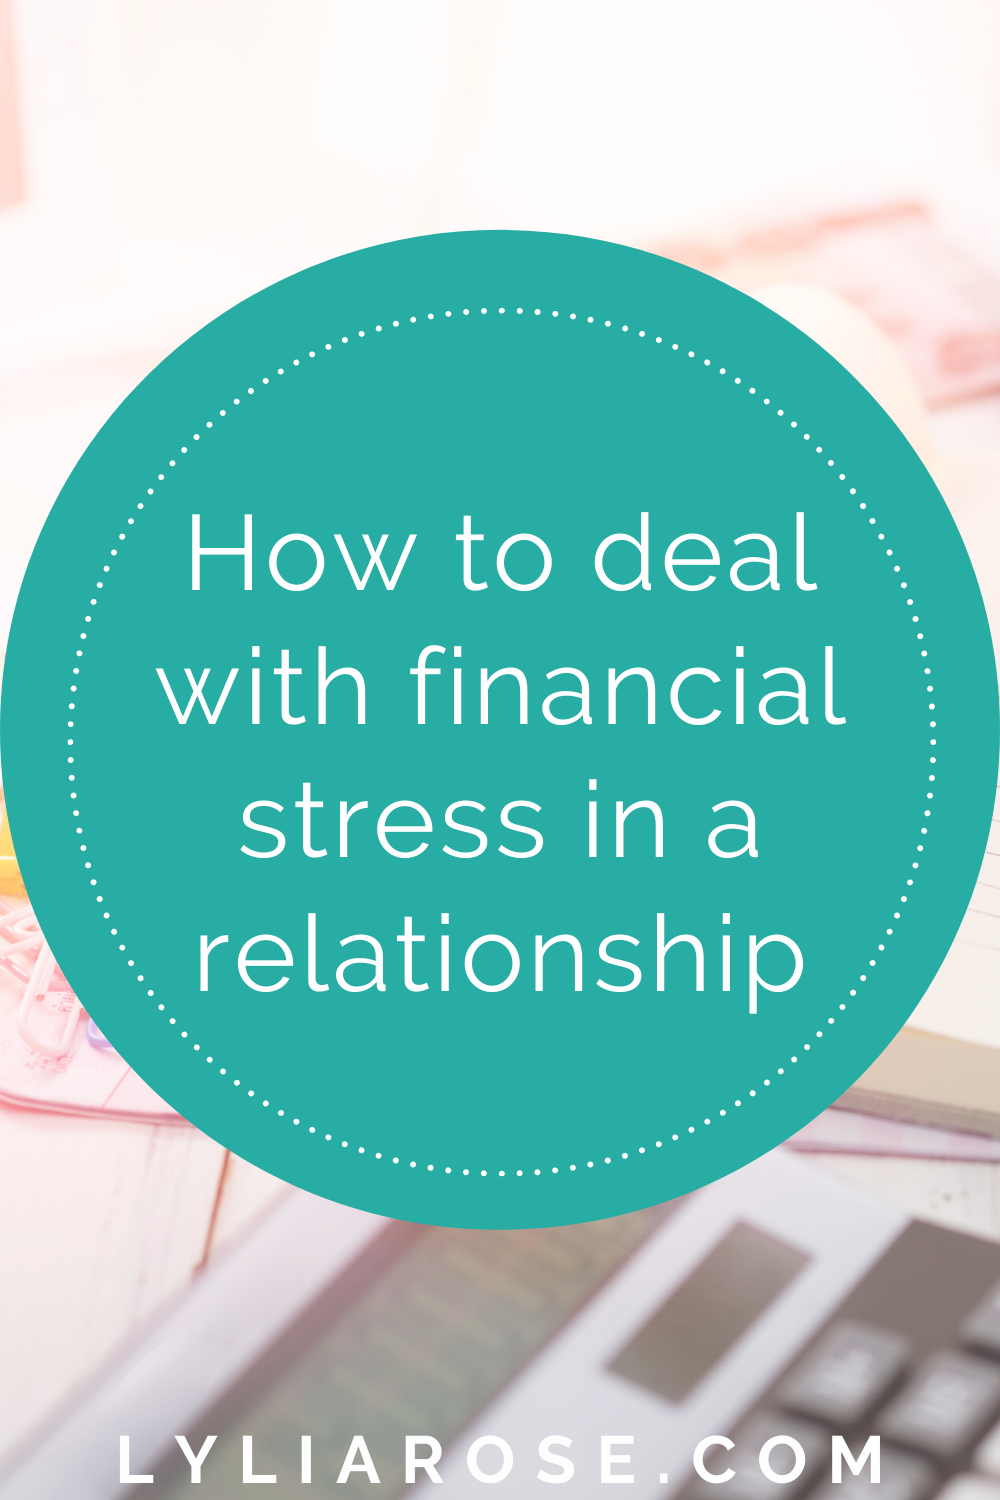 How to deal with financial stress in a relationship (1)